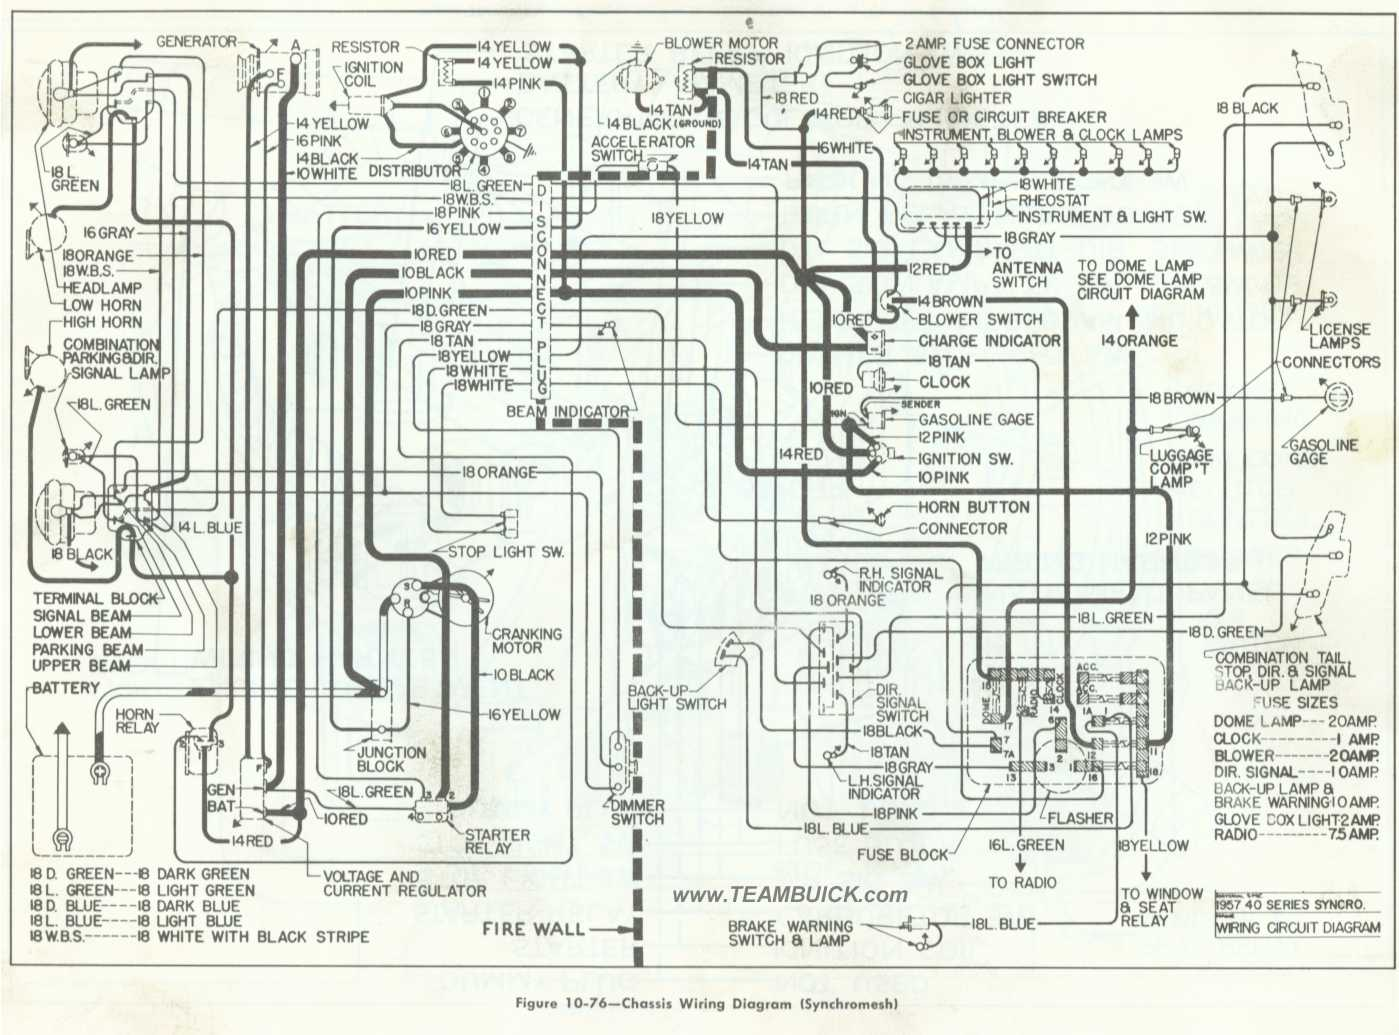 1957 Buick Chassis Wiring Diagram   Synchromesh